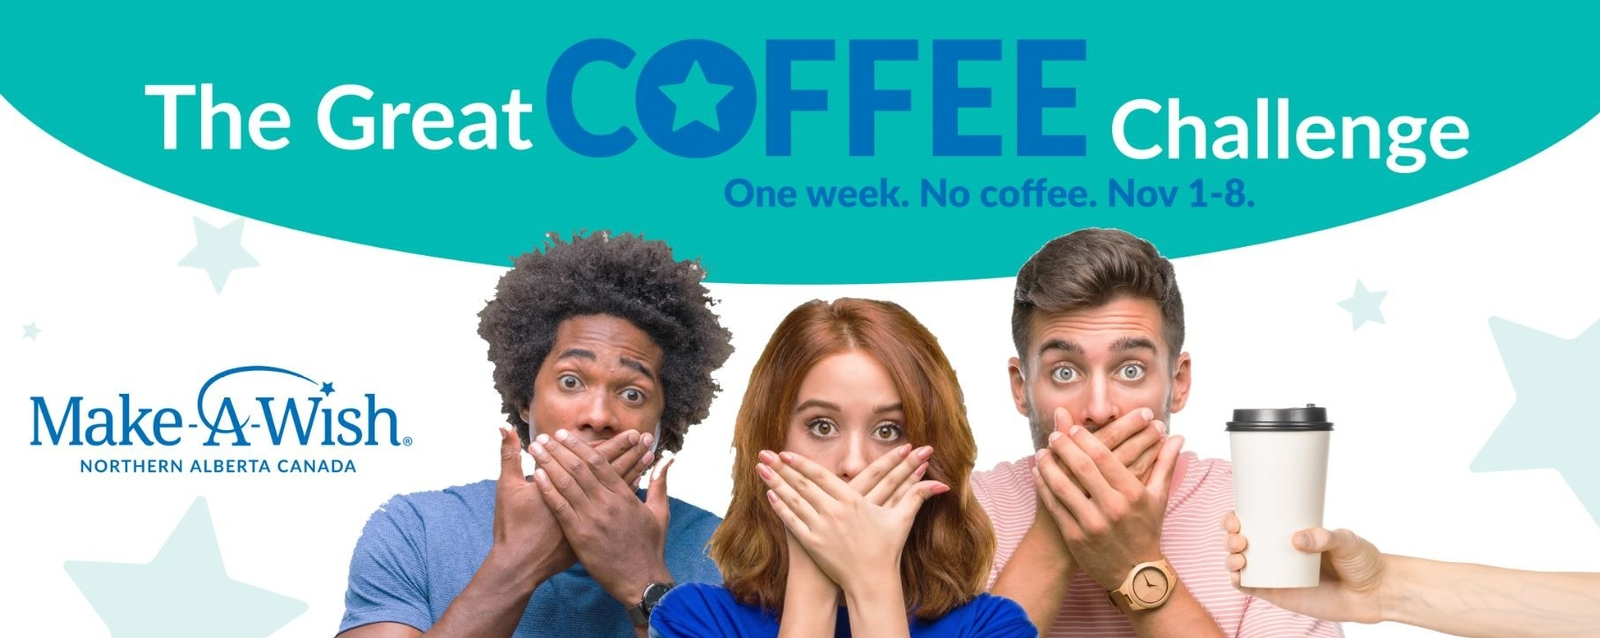 The Great Coffee Challenge